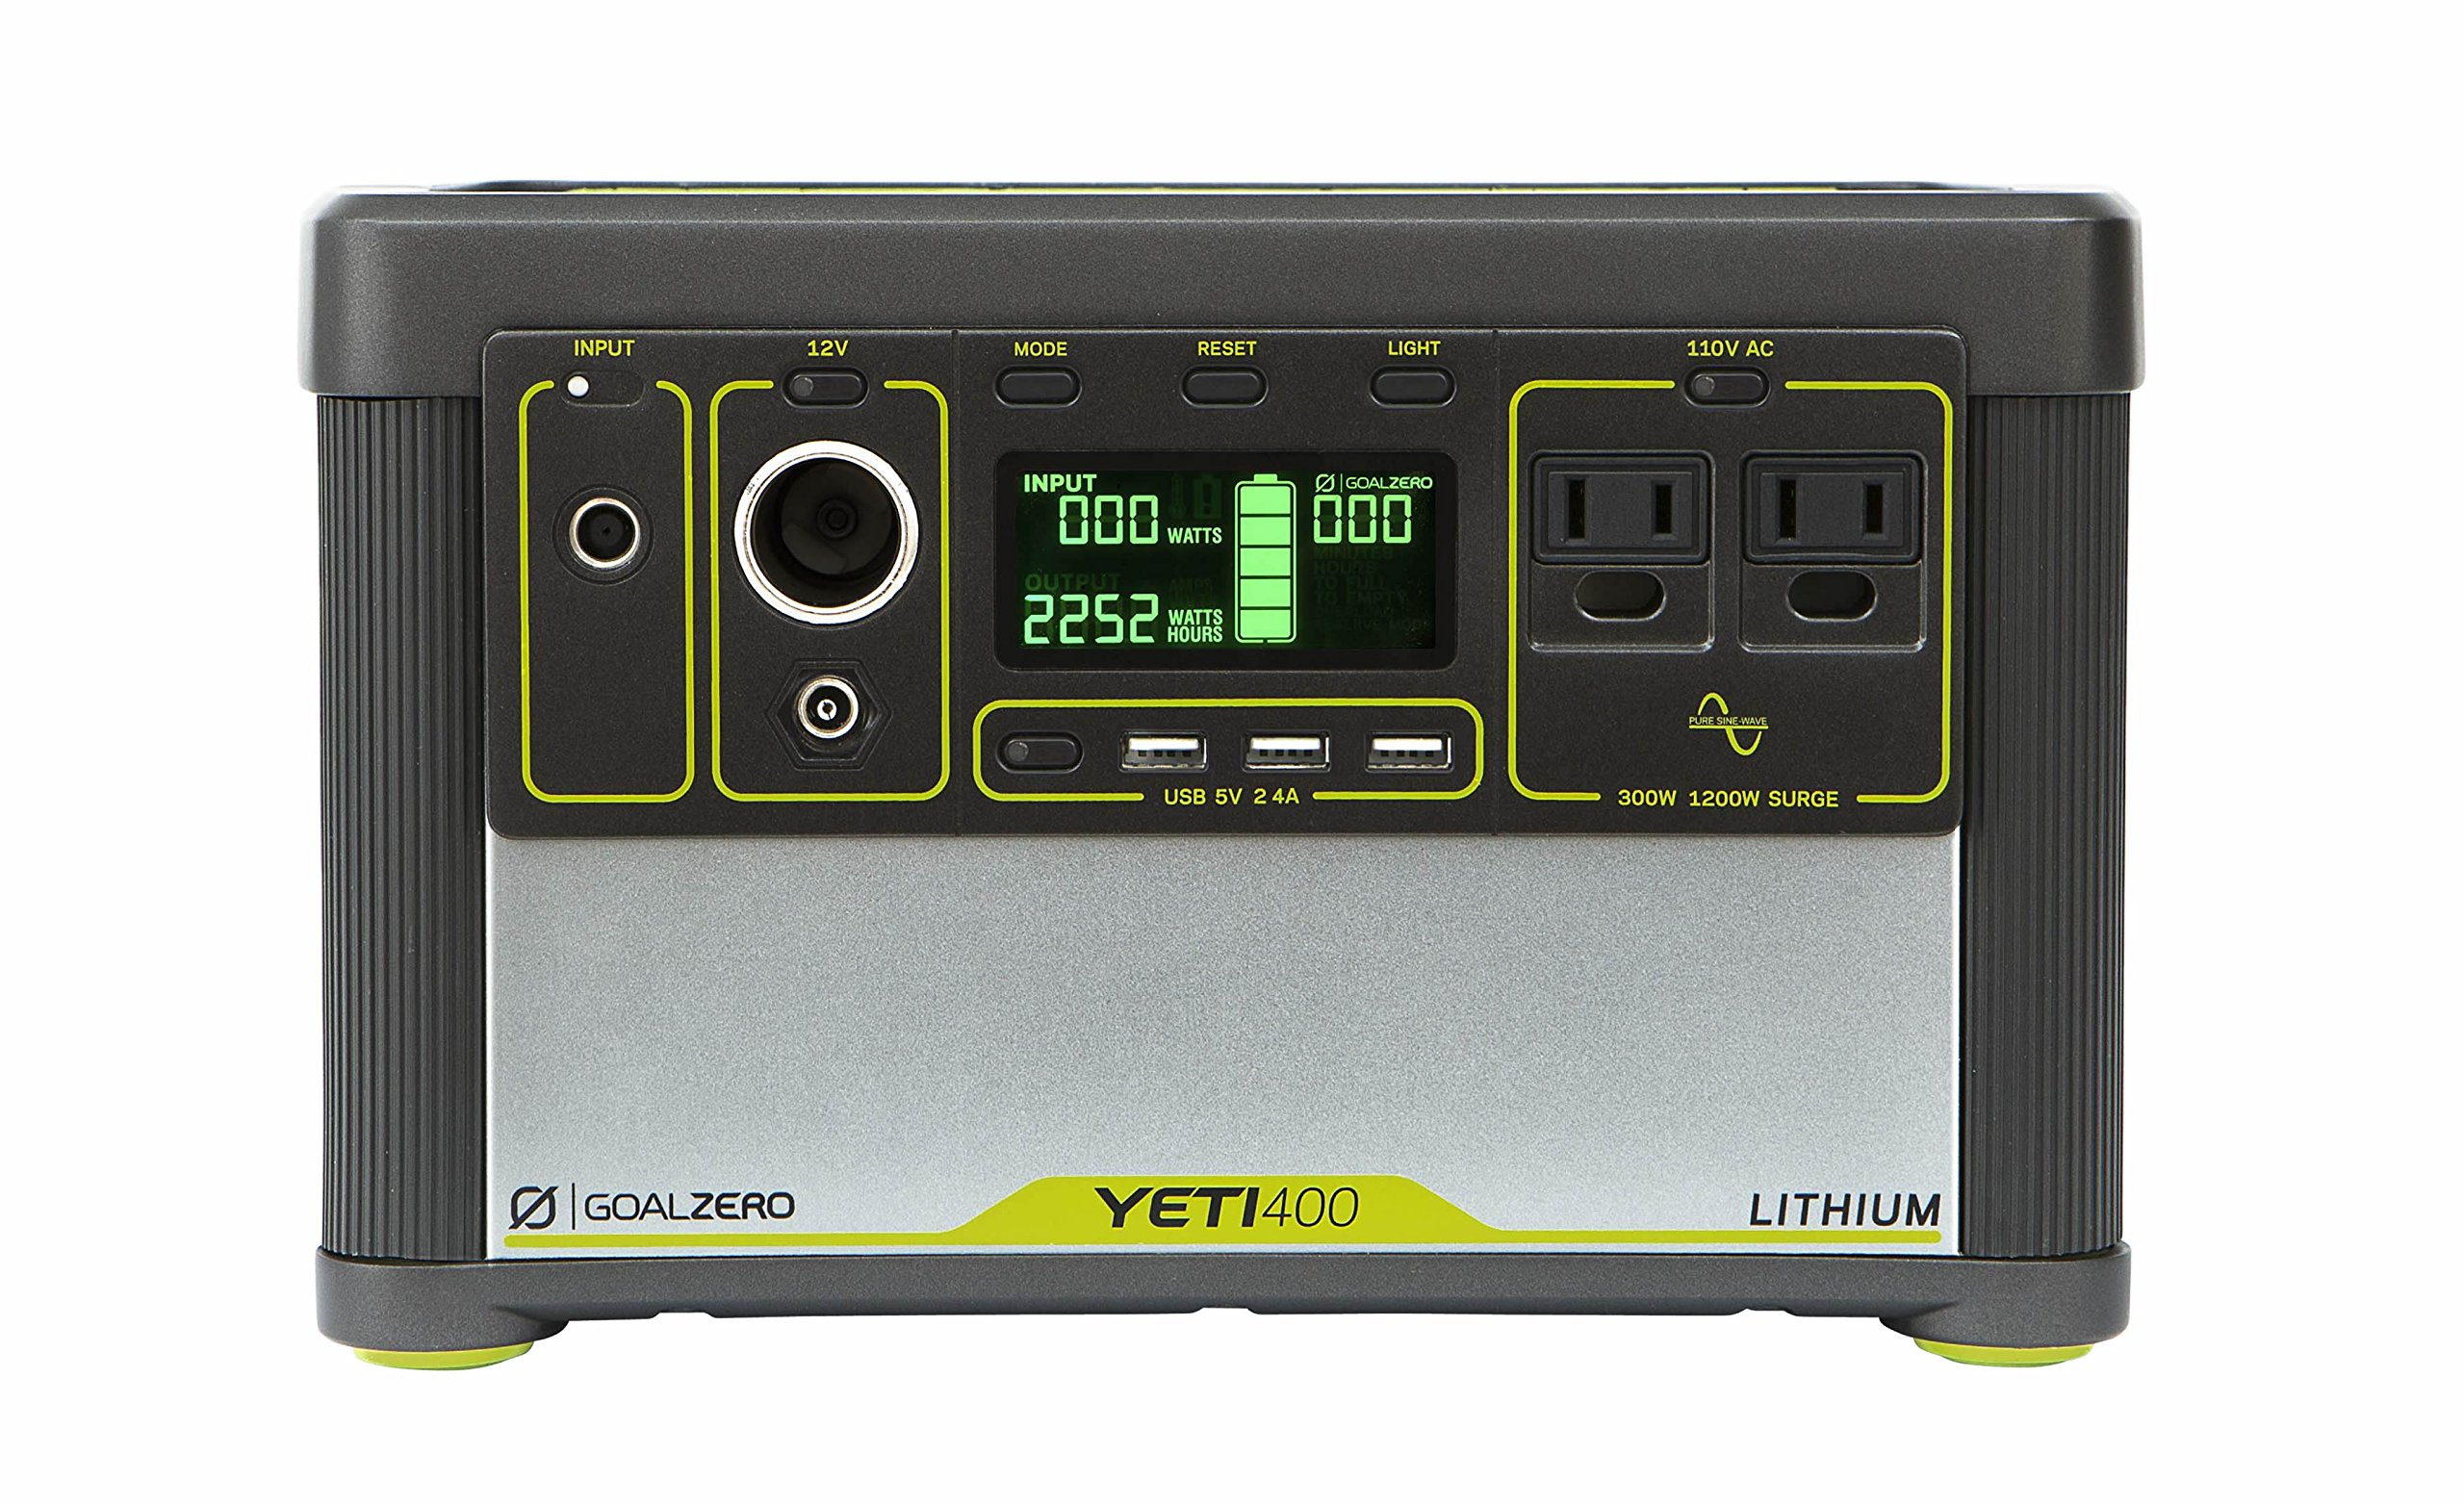 Goal Zero Yeti 400 Lithium Portable Power Station, 428Wh Rechargeable Generator and Backup Power Source with 300 Watt (1200 Watt Surge) AC inverter, USB, 12V Outputs by Goal Zero